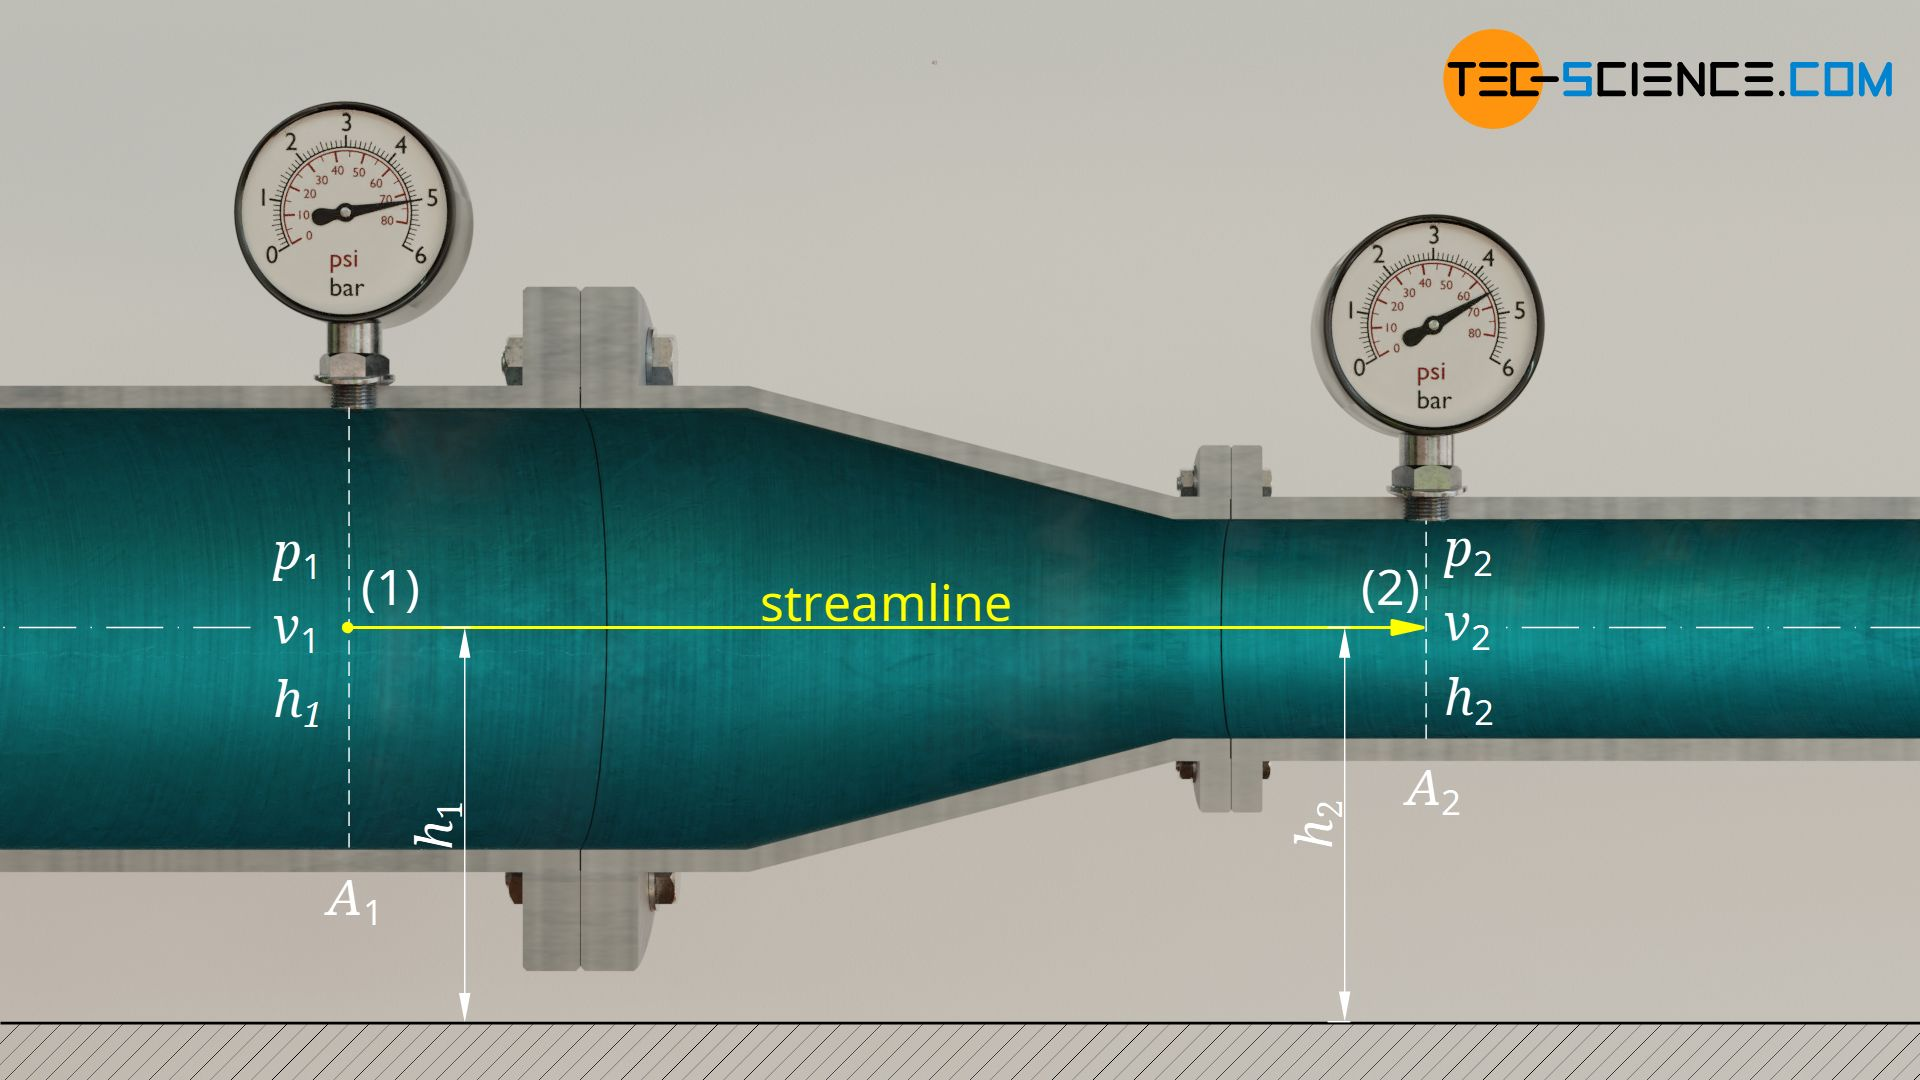 Horizontal flow through a pipe with constricted cross-section